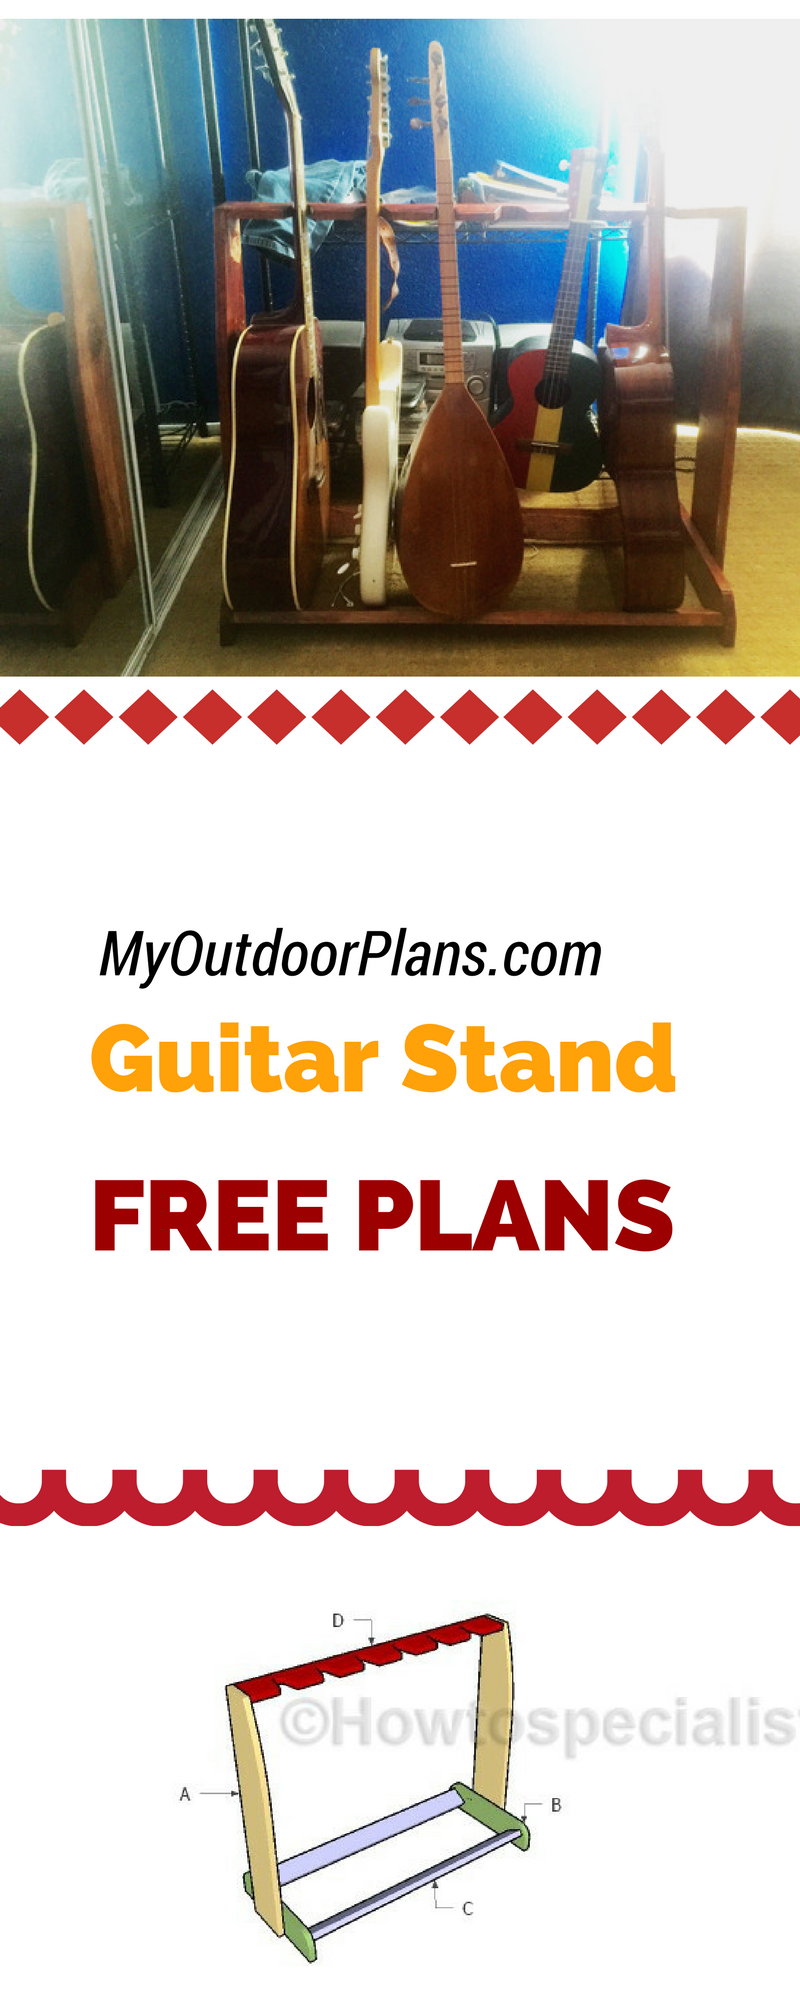 Guitar Stand Plans Diy Plans Pinterest Guitar Stand